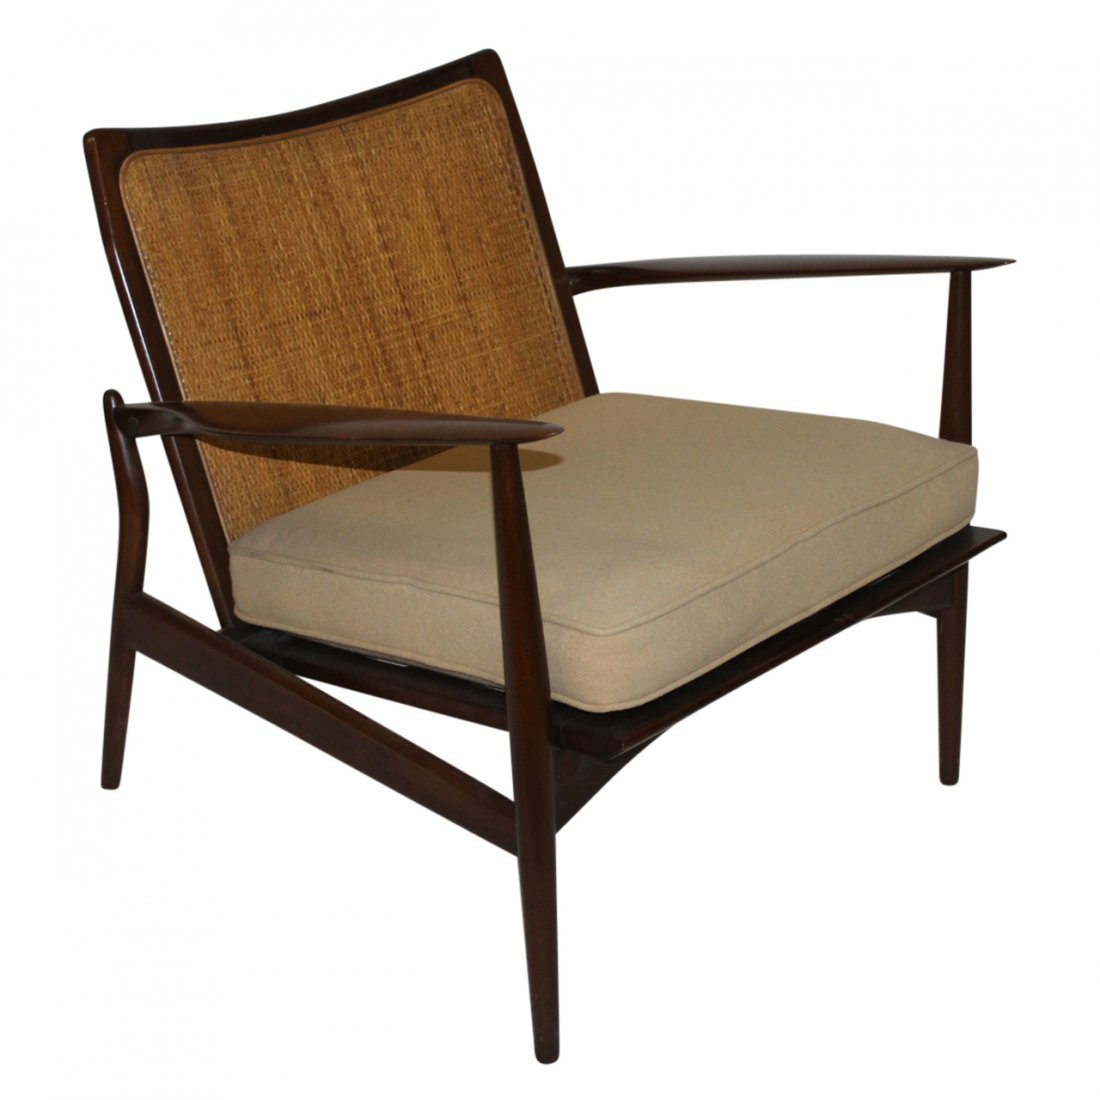 Mid Century Modern Lounge Chair Rattan and Wood